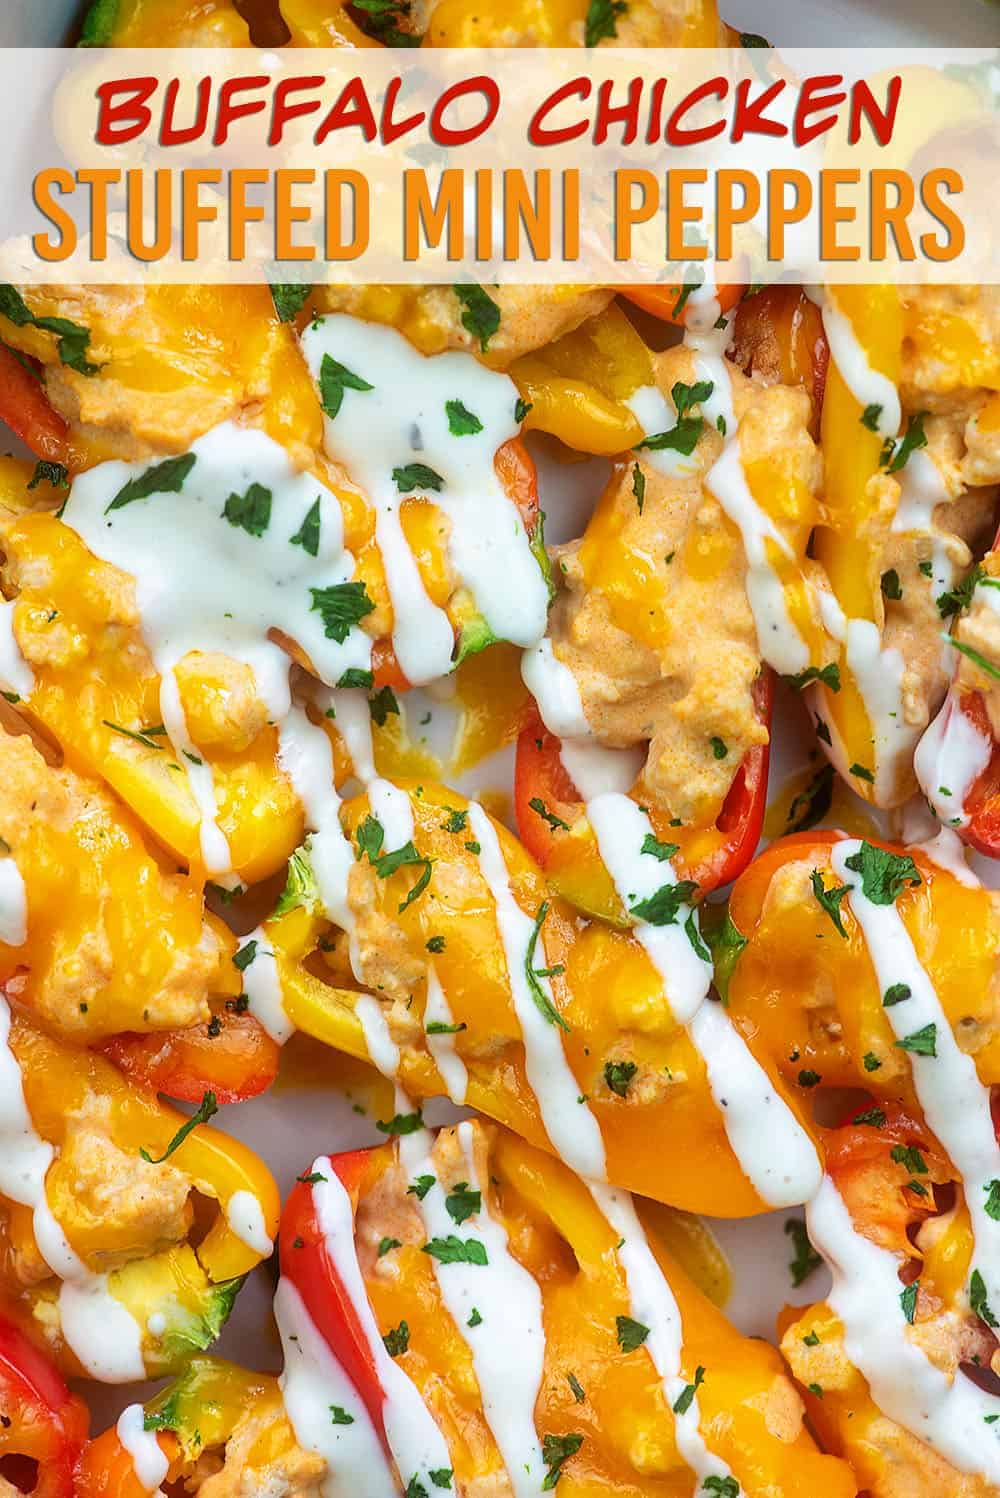 mini peppers stuffed with cheese and chicken and topped with ranch dressing